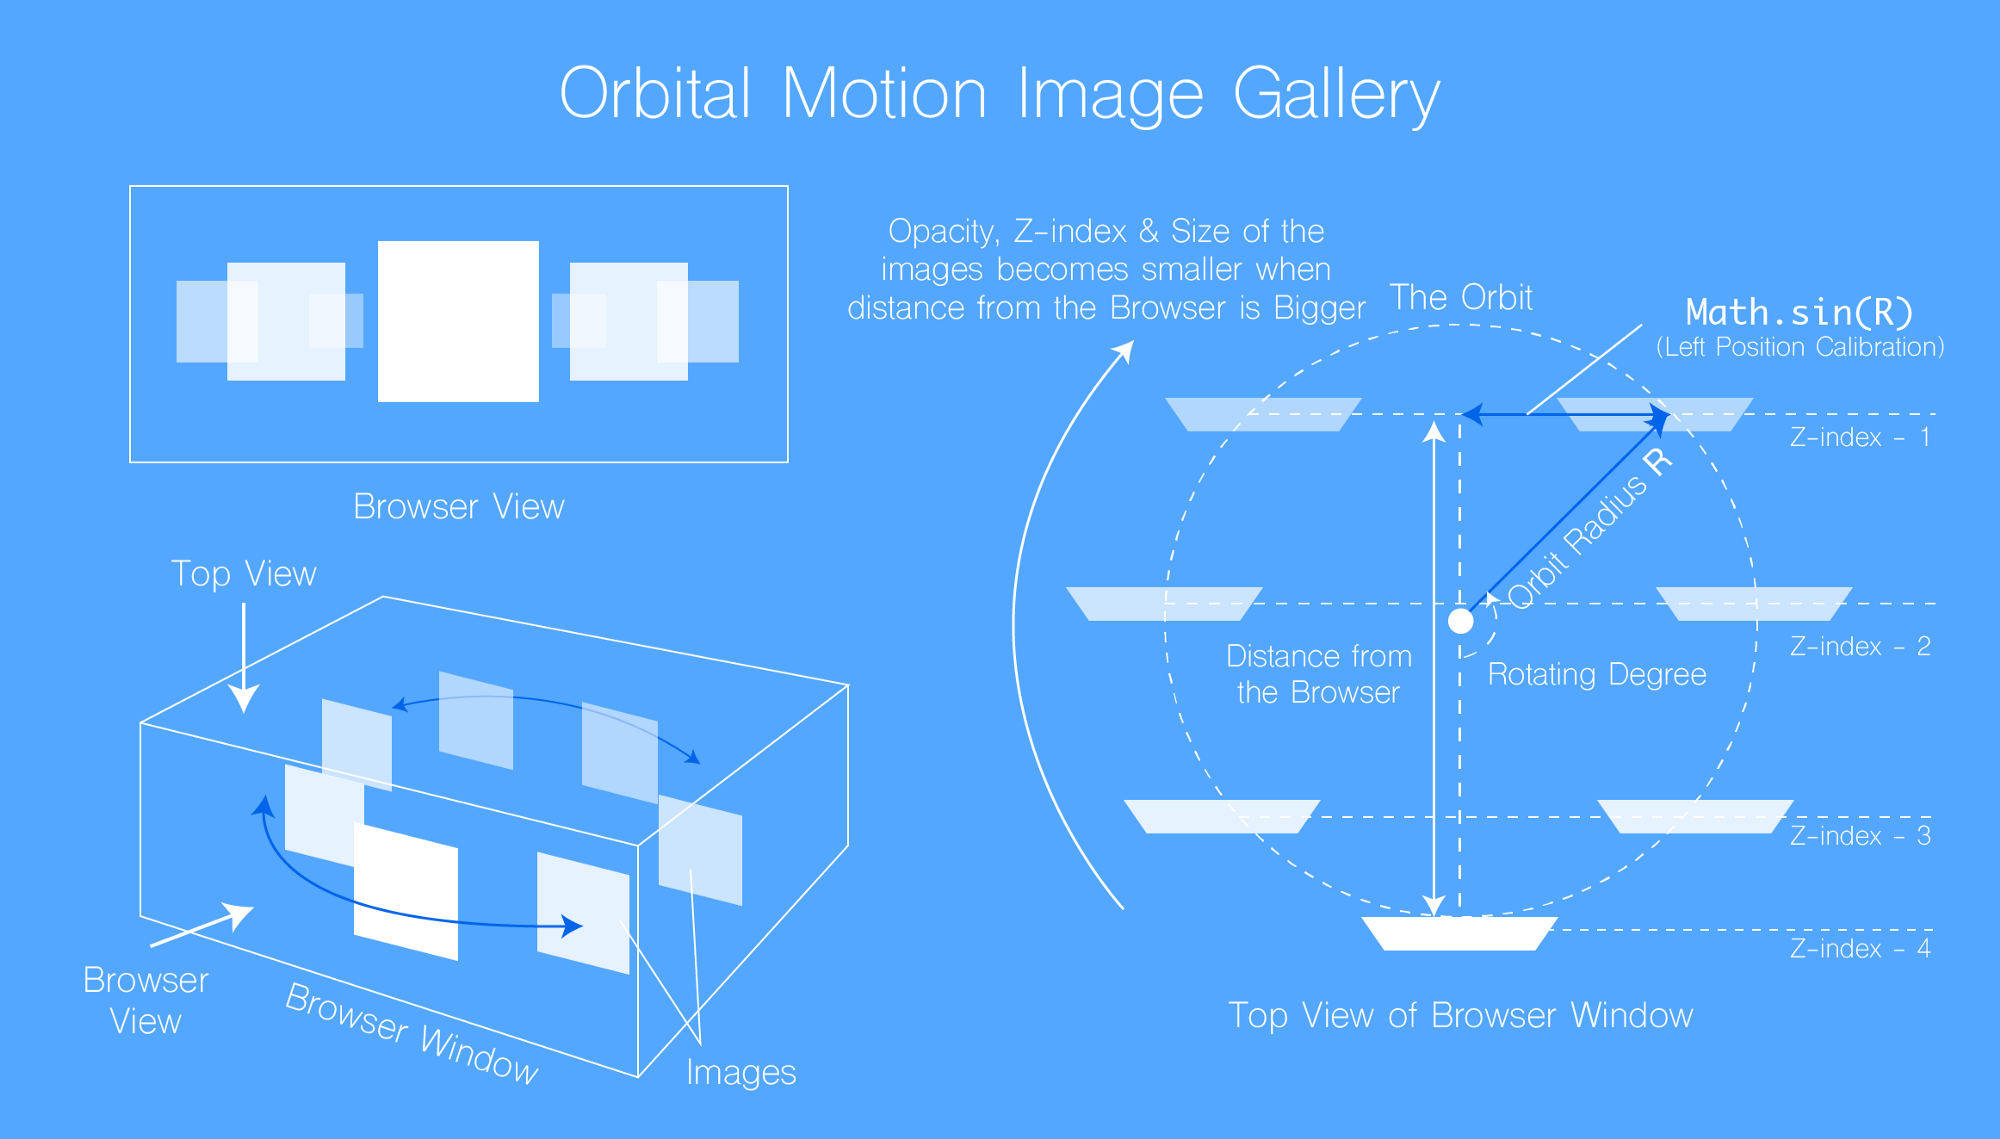 Structure of the Orbital ImageGallery